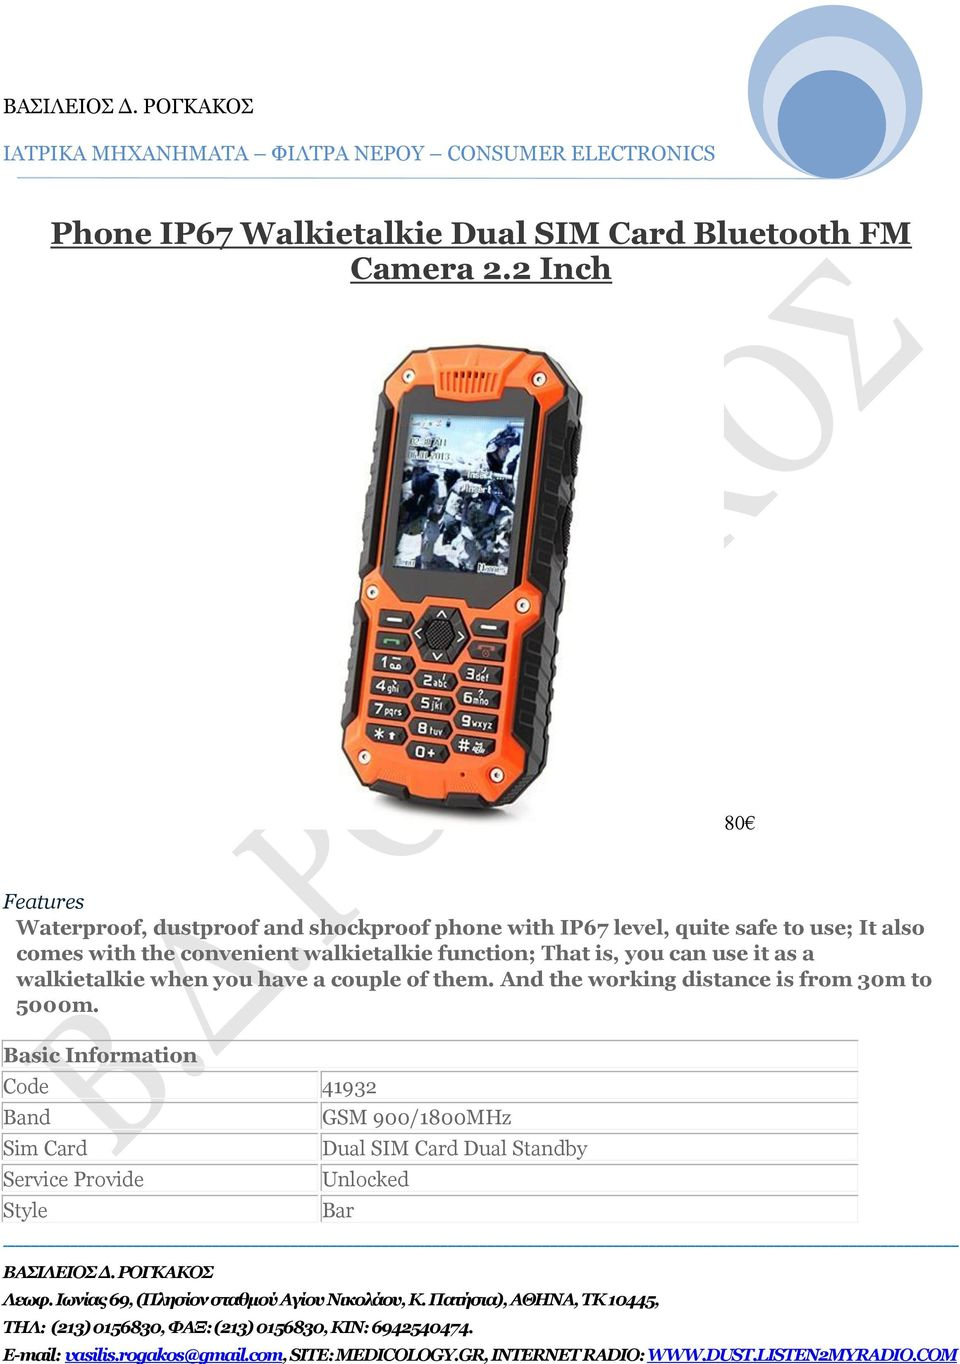 with the convenient walkietalkie function; That is, you can use it as a walkietalkie when you have a couple of